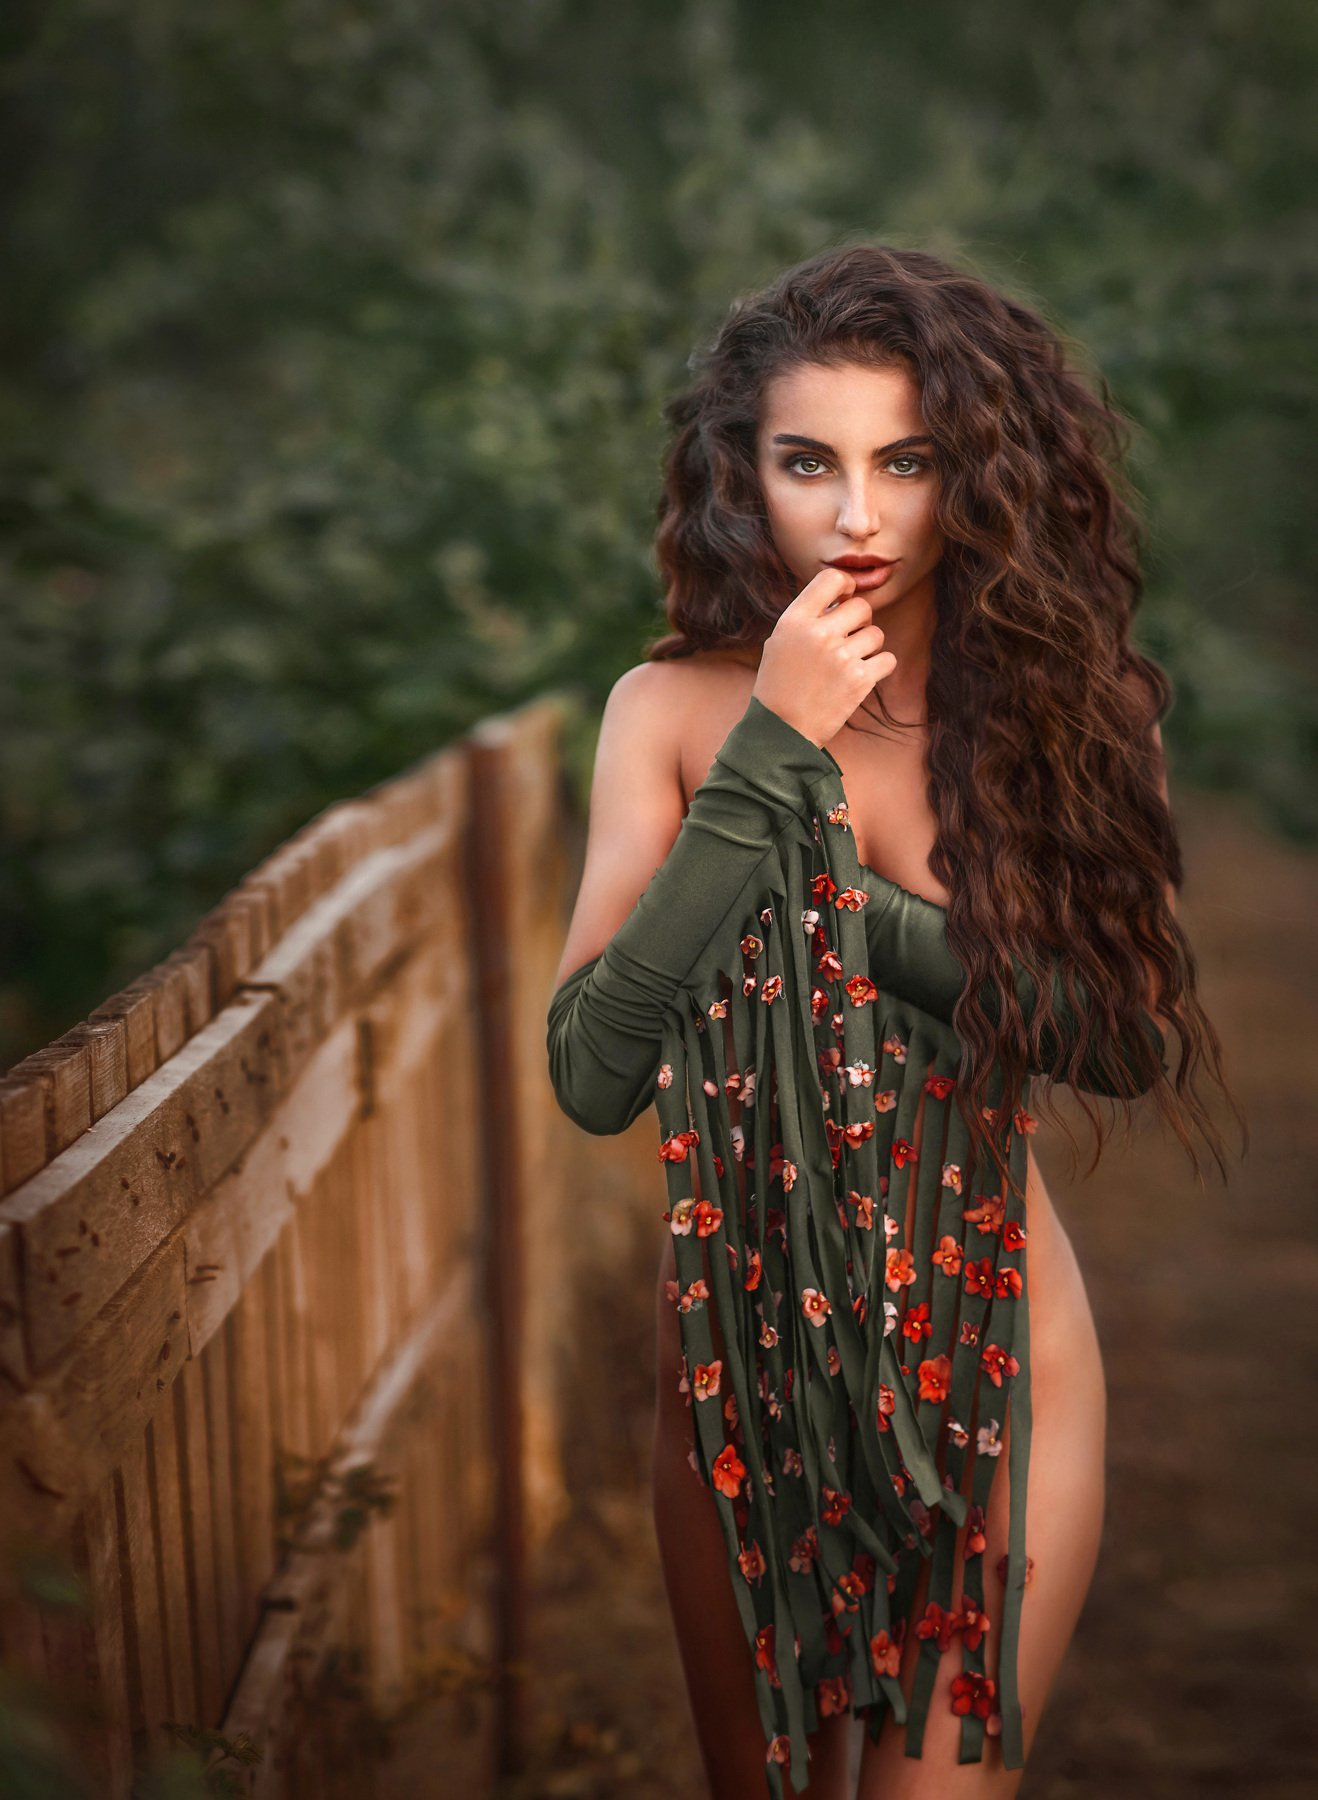 adult,art,attractive,background,beautiful,beauty,black,body,brunette,caucasian,dark,delicate flower,erotic,face,fashion,female,figure,forest,girl,gloves,green,hair,happy,lady,model,naked,nature,nu,nude,nudes,nudism,nudist,outdoor,outdoors,park,portrait,po, Ilona